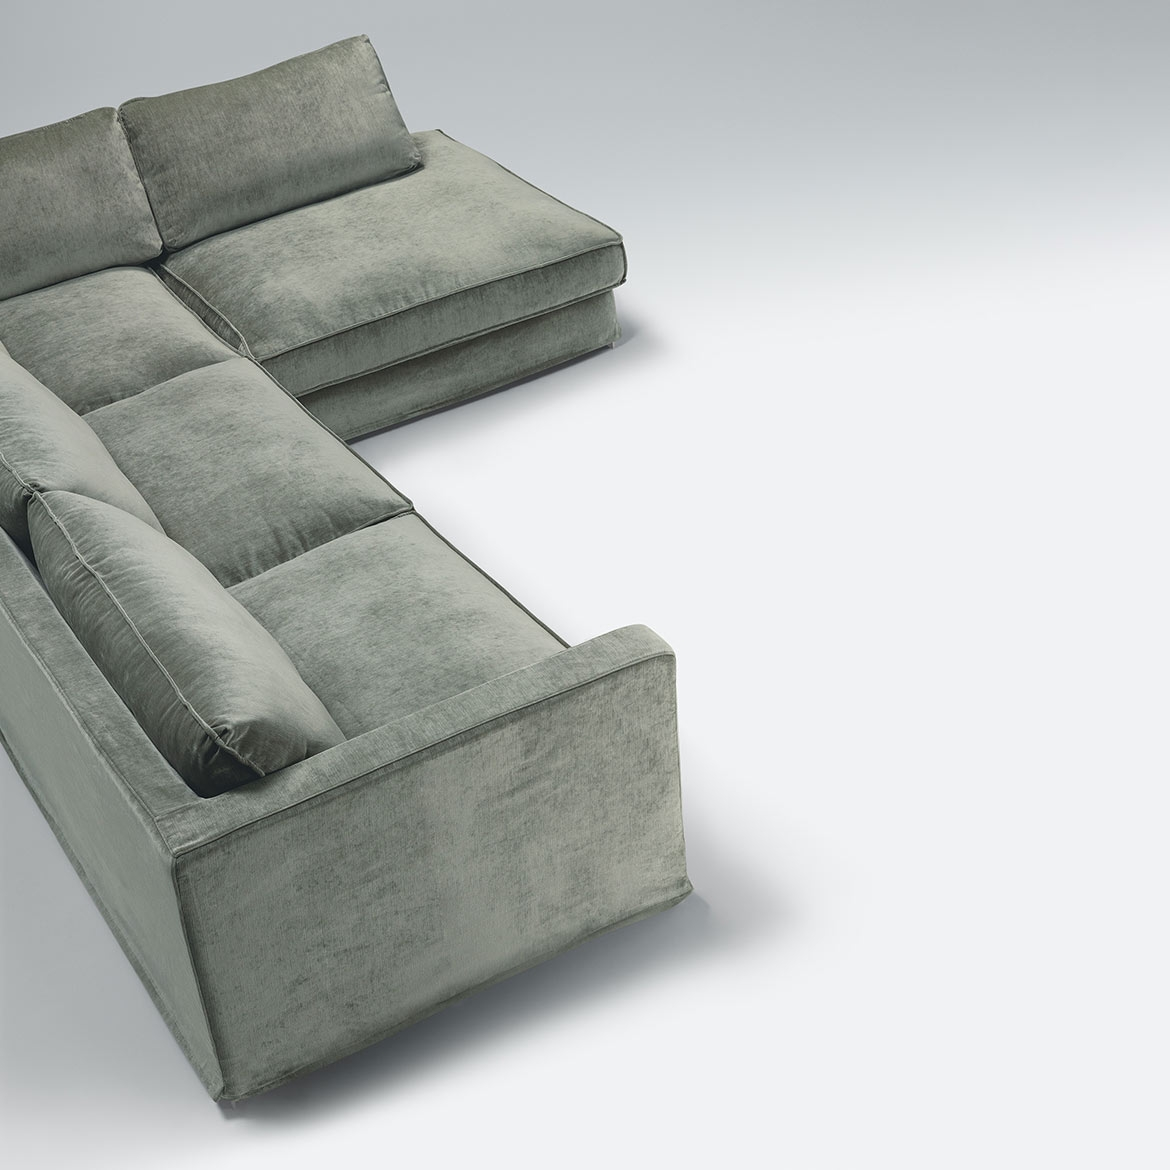 Salci corner sofa - set 4